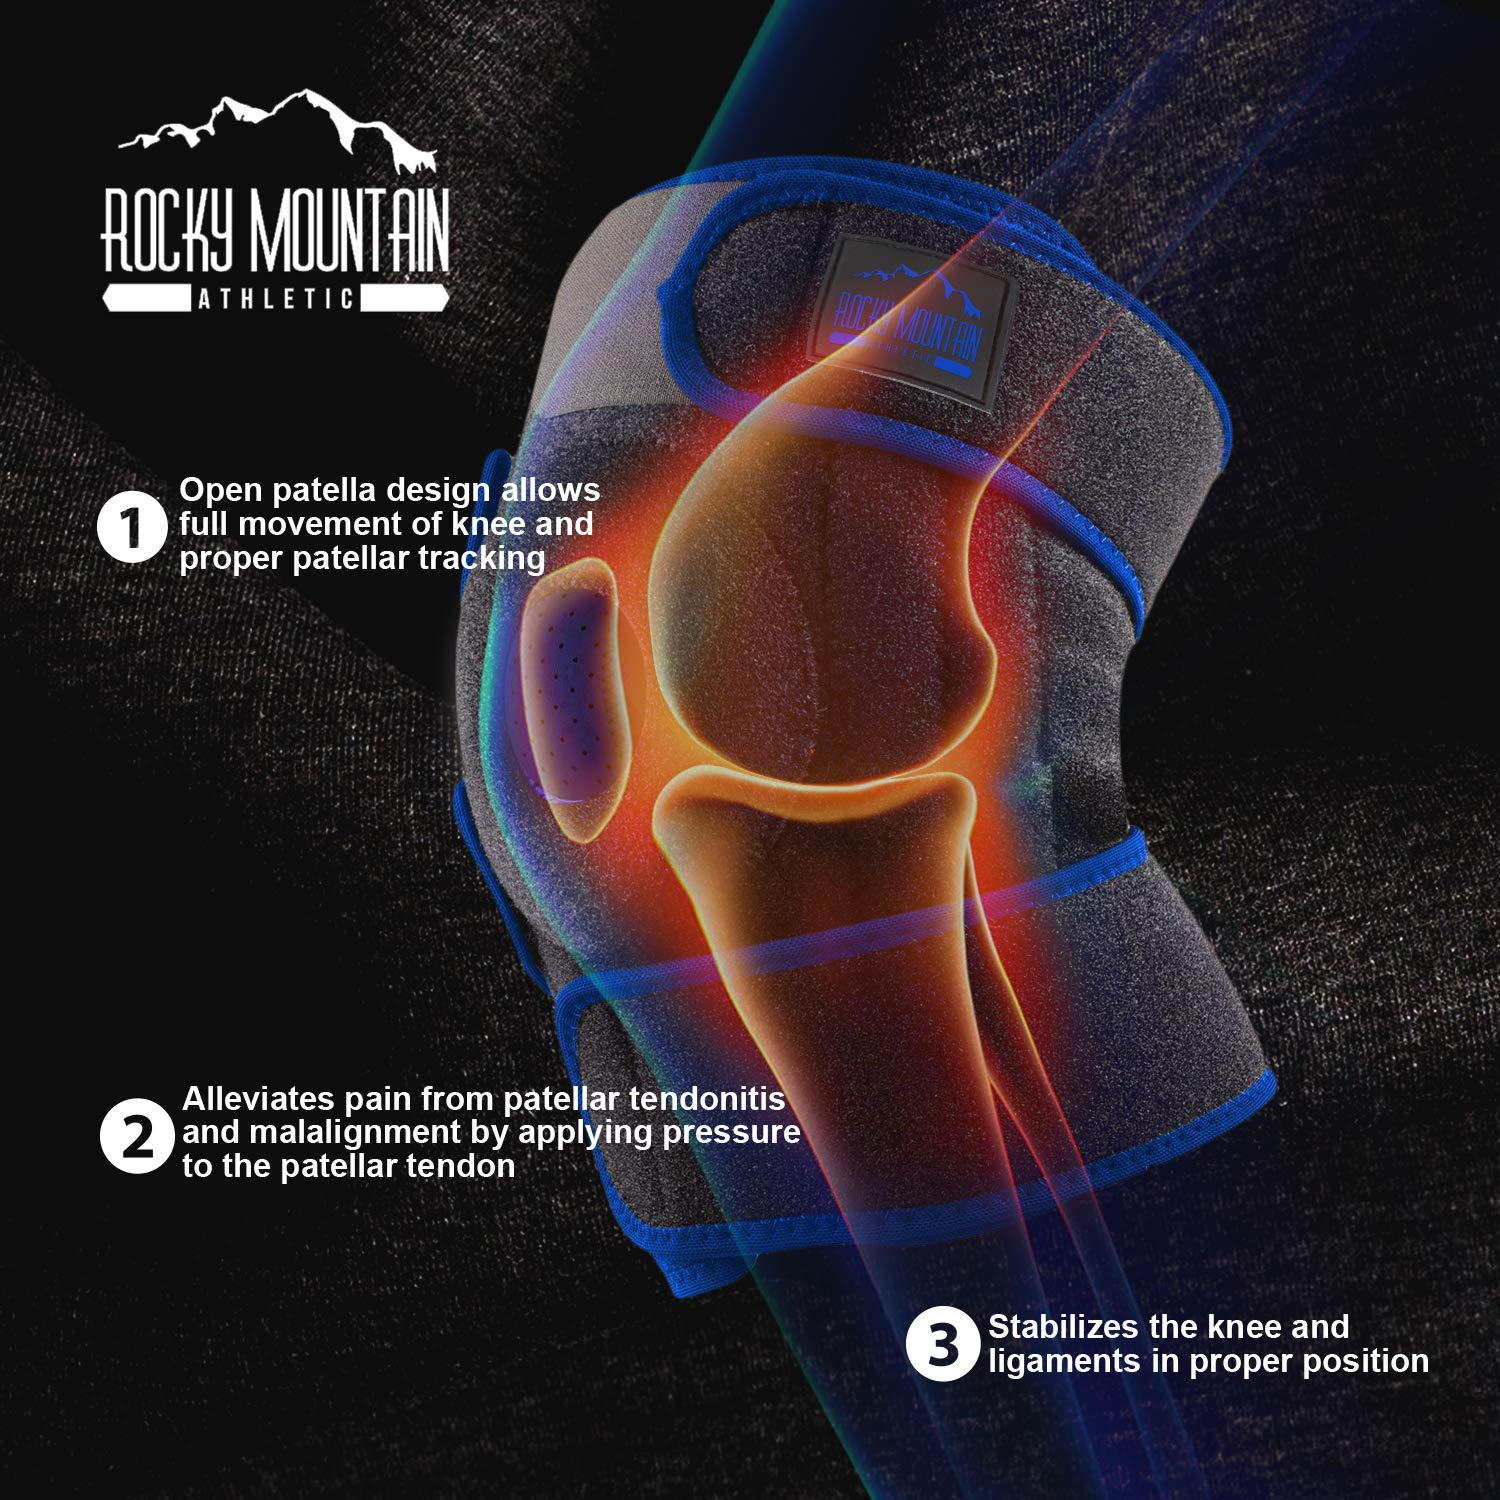 Knee Brace Support Sleeve Therapy Wrap Adjustable Patella Tendon Stabilizer for Meniscus Tear, Bursitis, Runners, Arthritis, Jumpers, ACL, MCL, Joint Injuries, Ligament Sprains, Swelling, & All Sports by Rocky Mountain Athletic (Image #3)